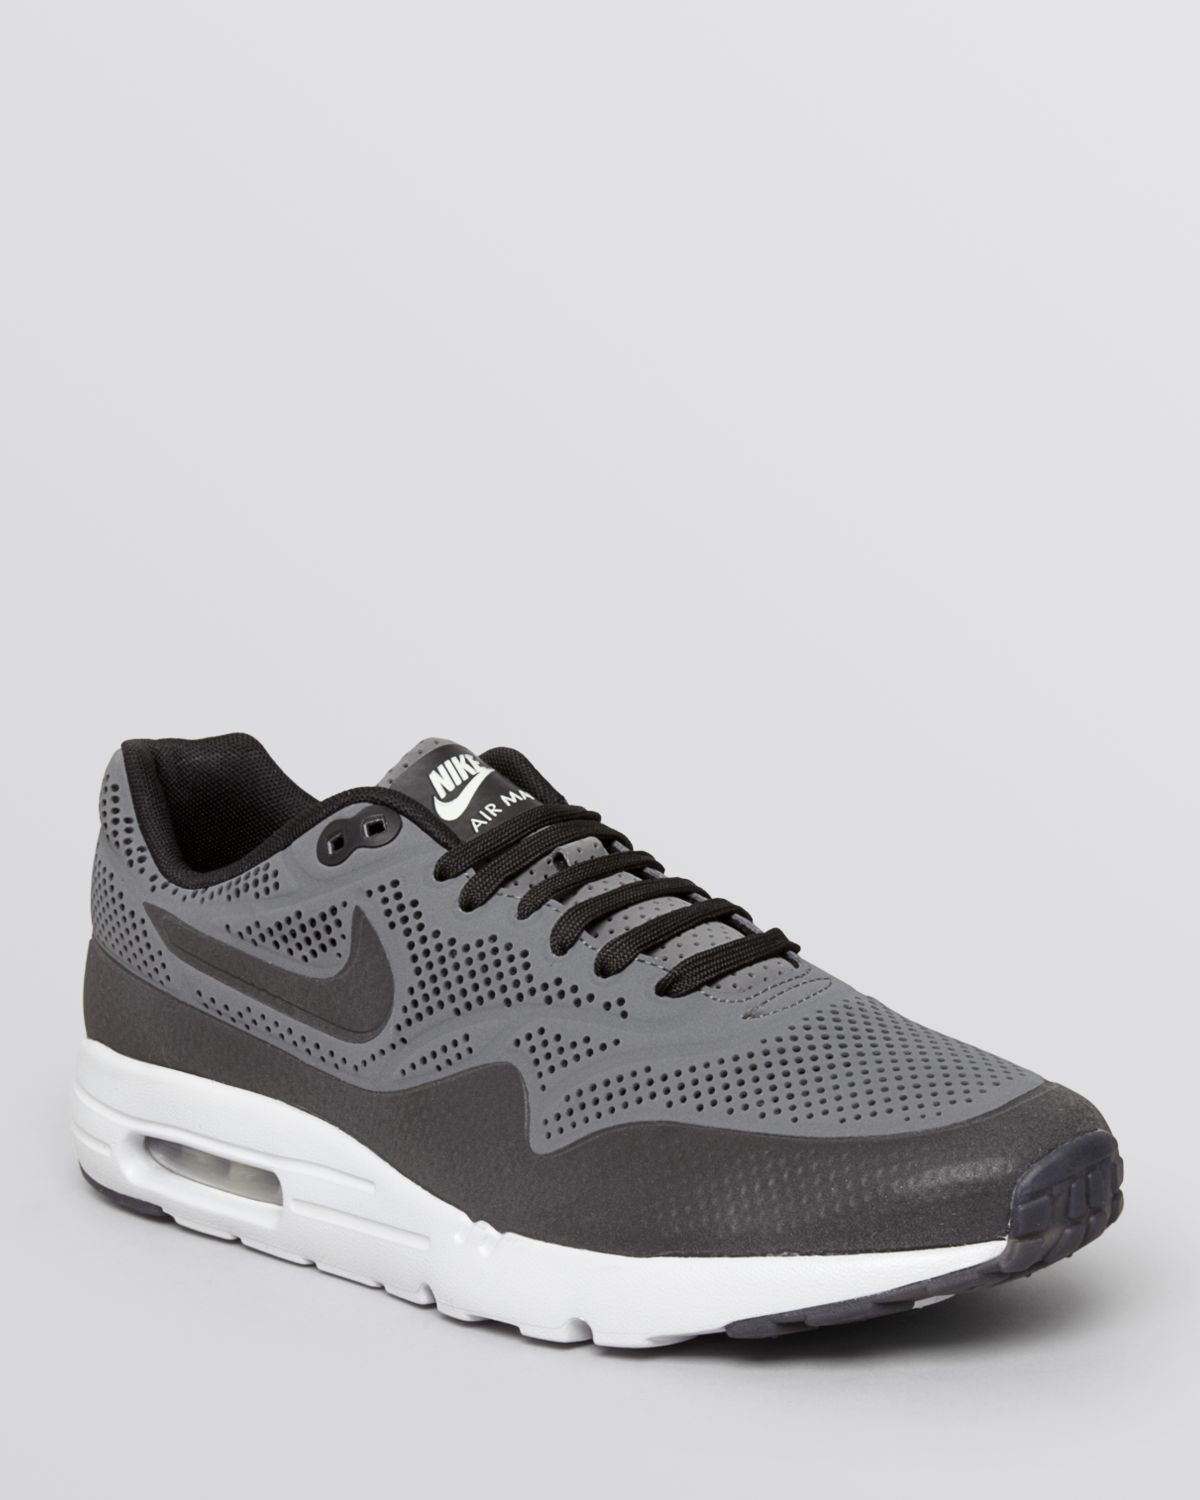 lyst nike air max 1 ultra moire sneakers in gray for men. Black Bedroom Furniture Sets. Home Design Ideas